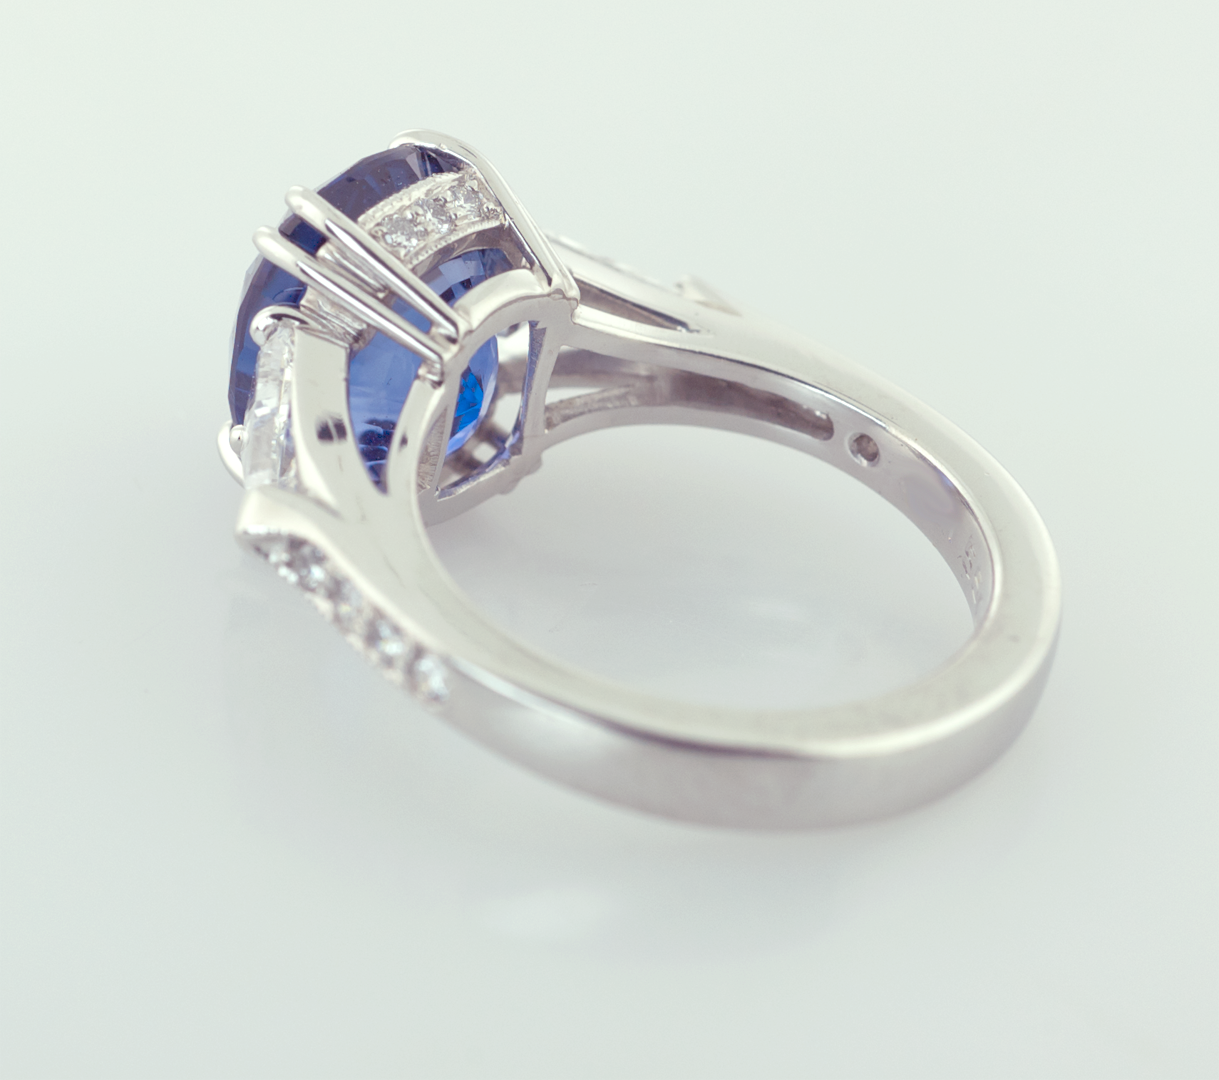 Oval Sapphire 3.50ct. and Trilliam Shape Diamonds Platinum Ring, Back View